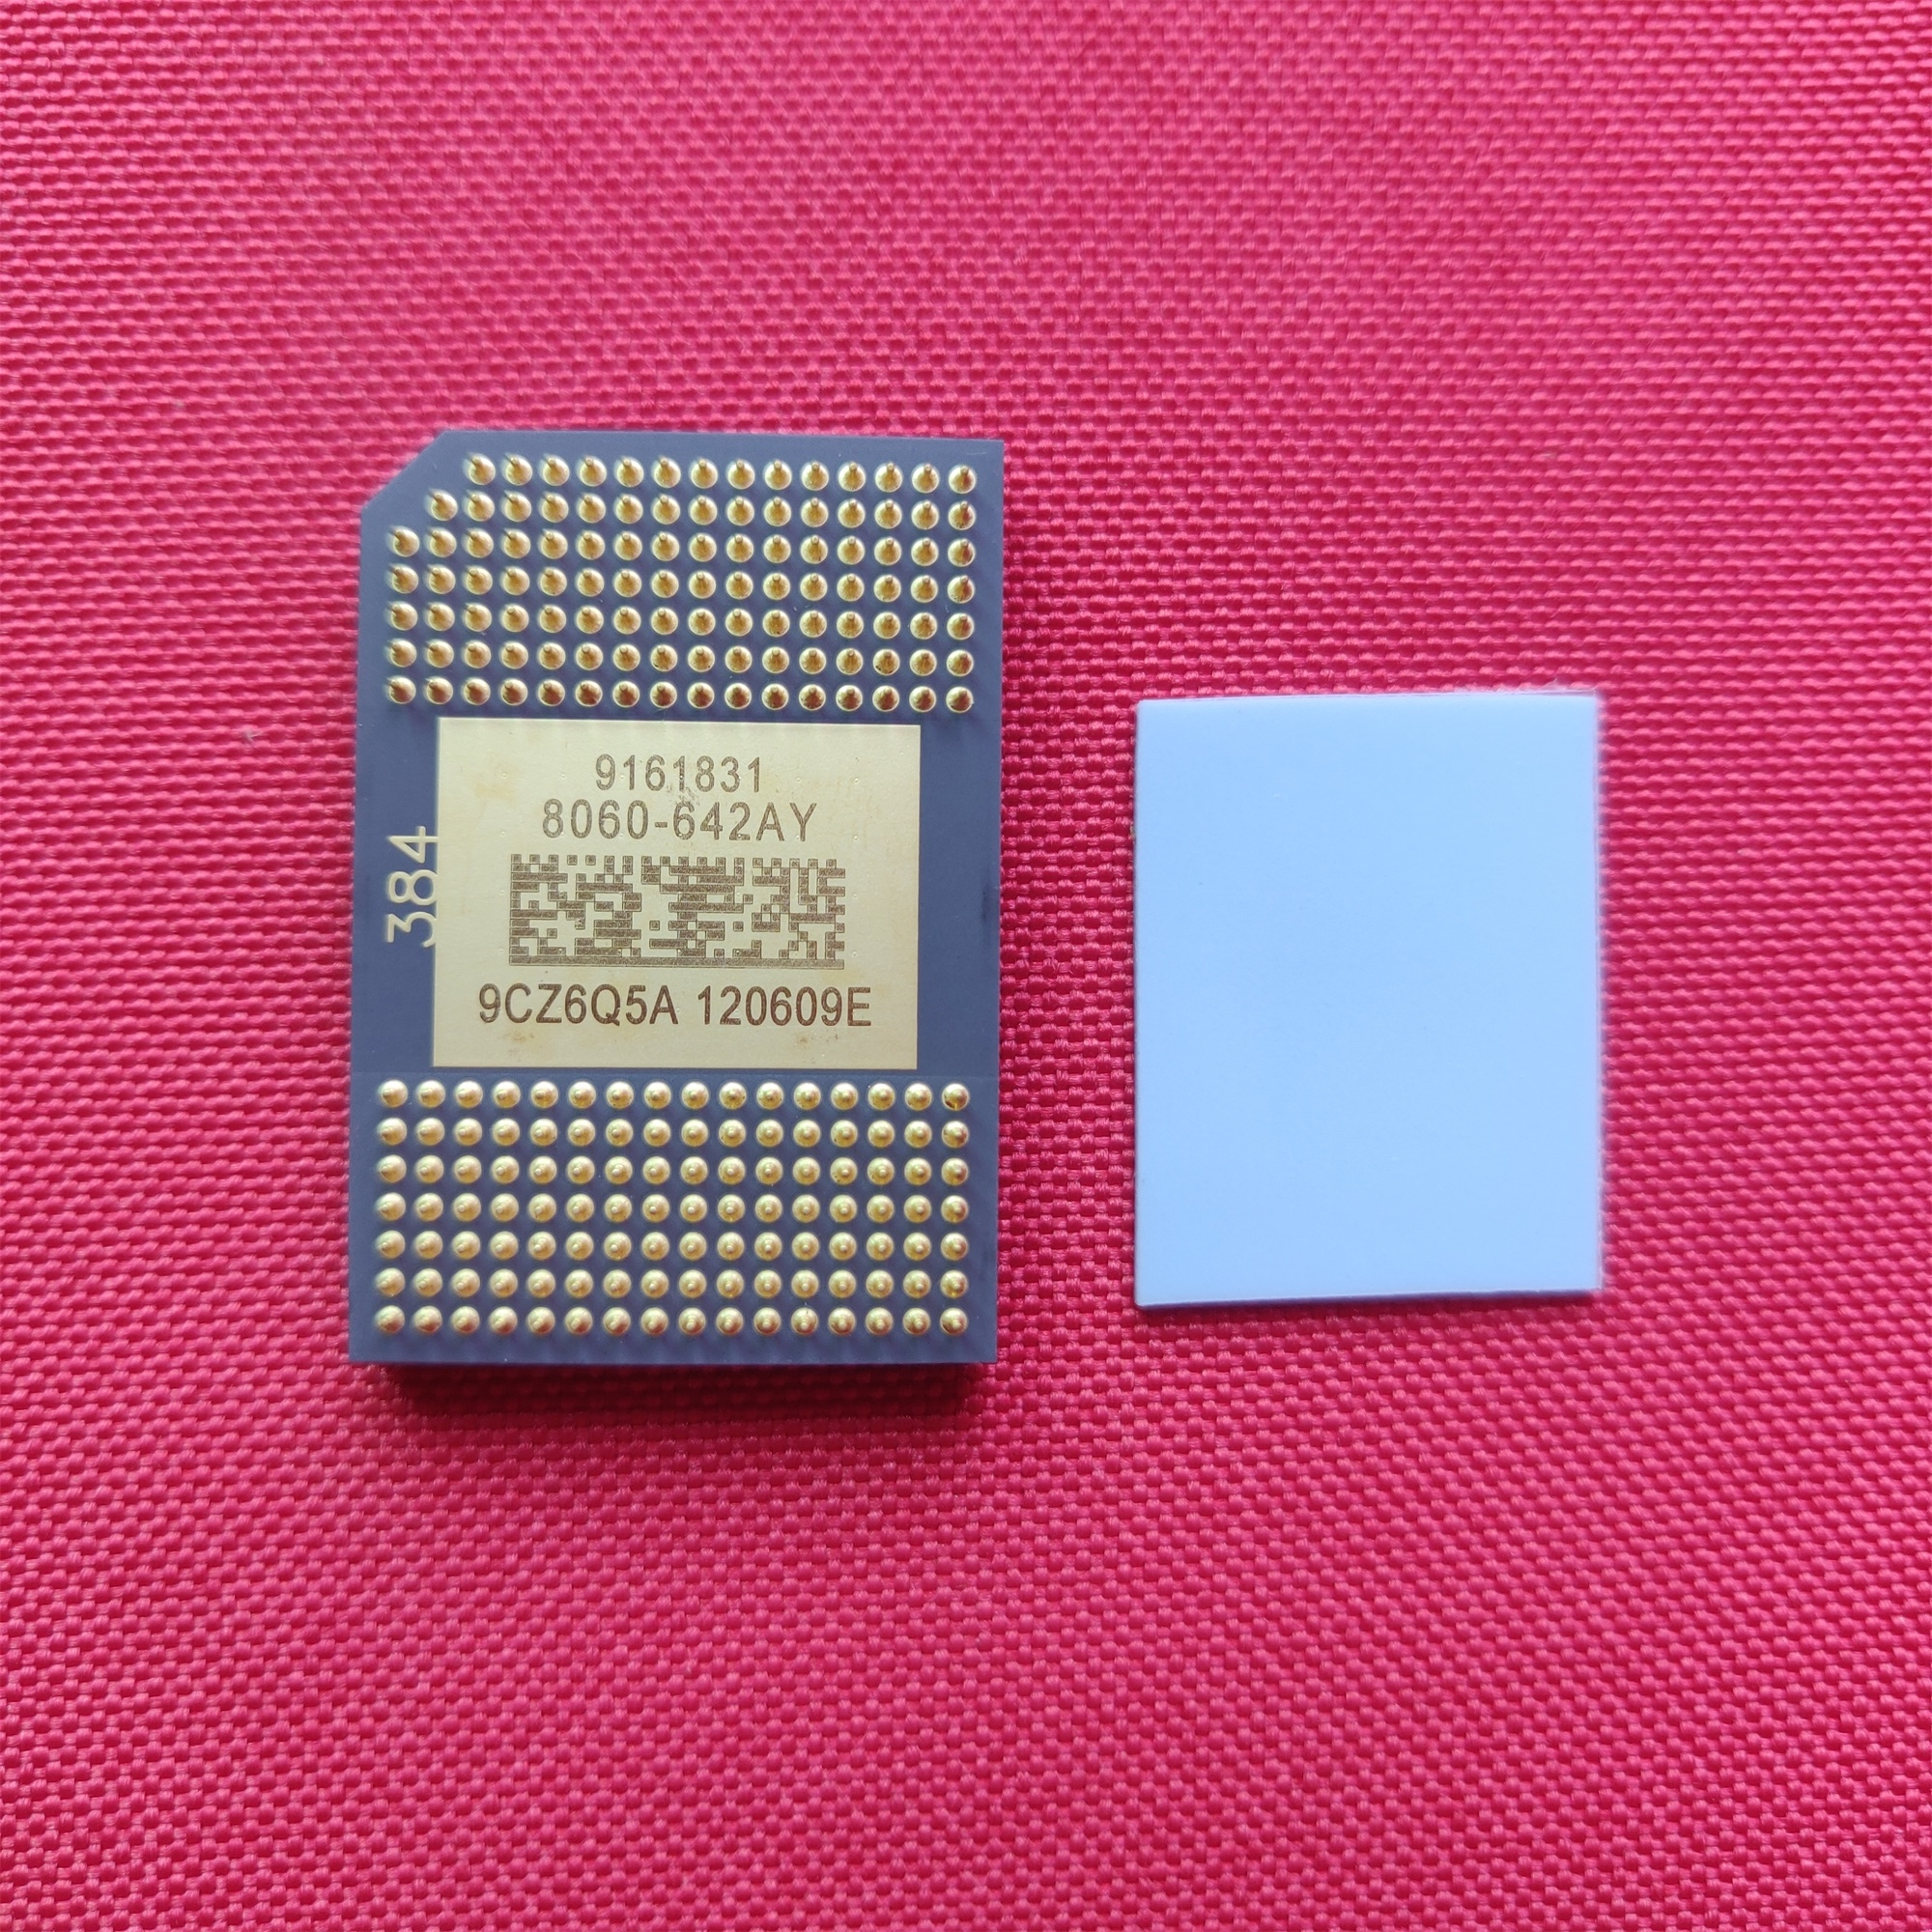 New Projector Chip DMD Brand New Projector Chip 8060-631AY 8060-642AY They Are Same Use !